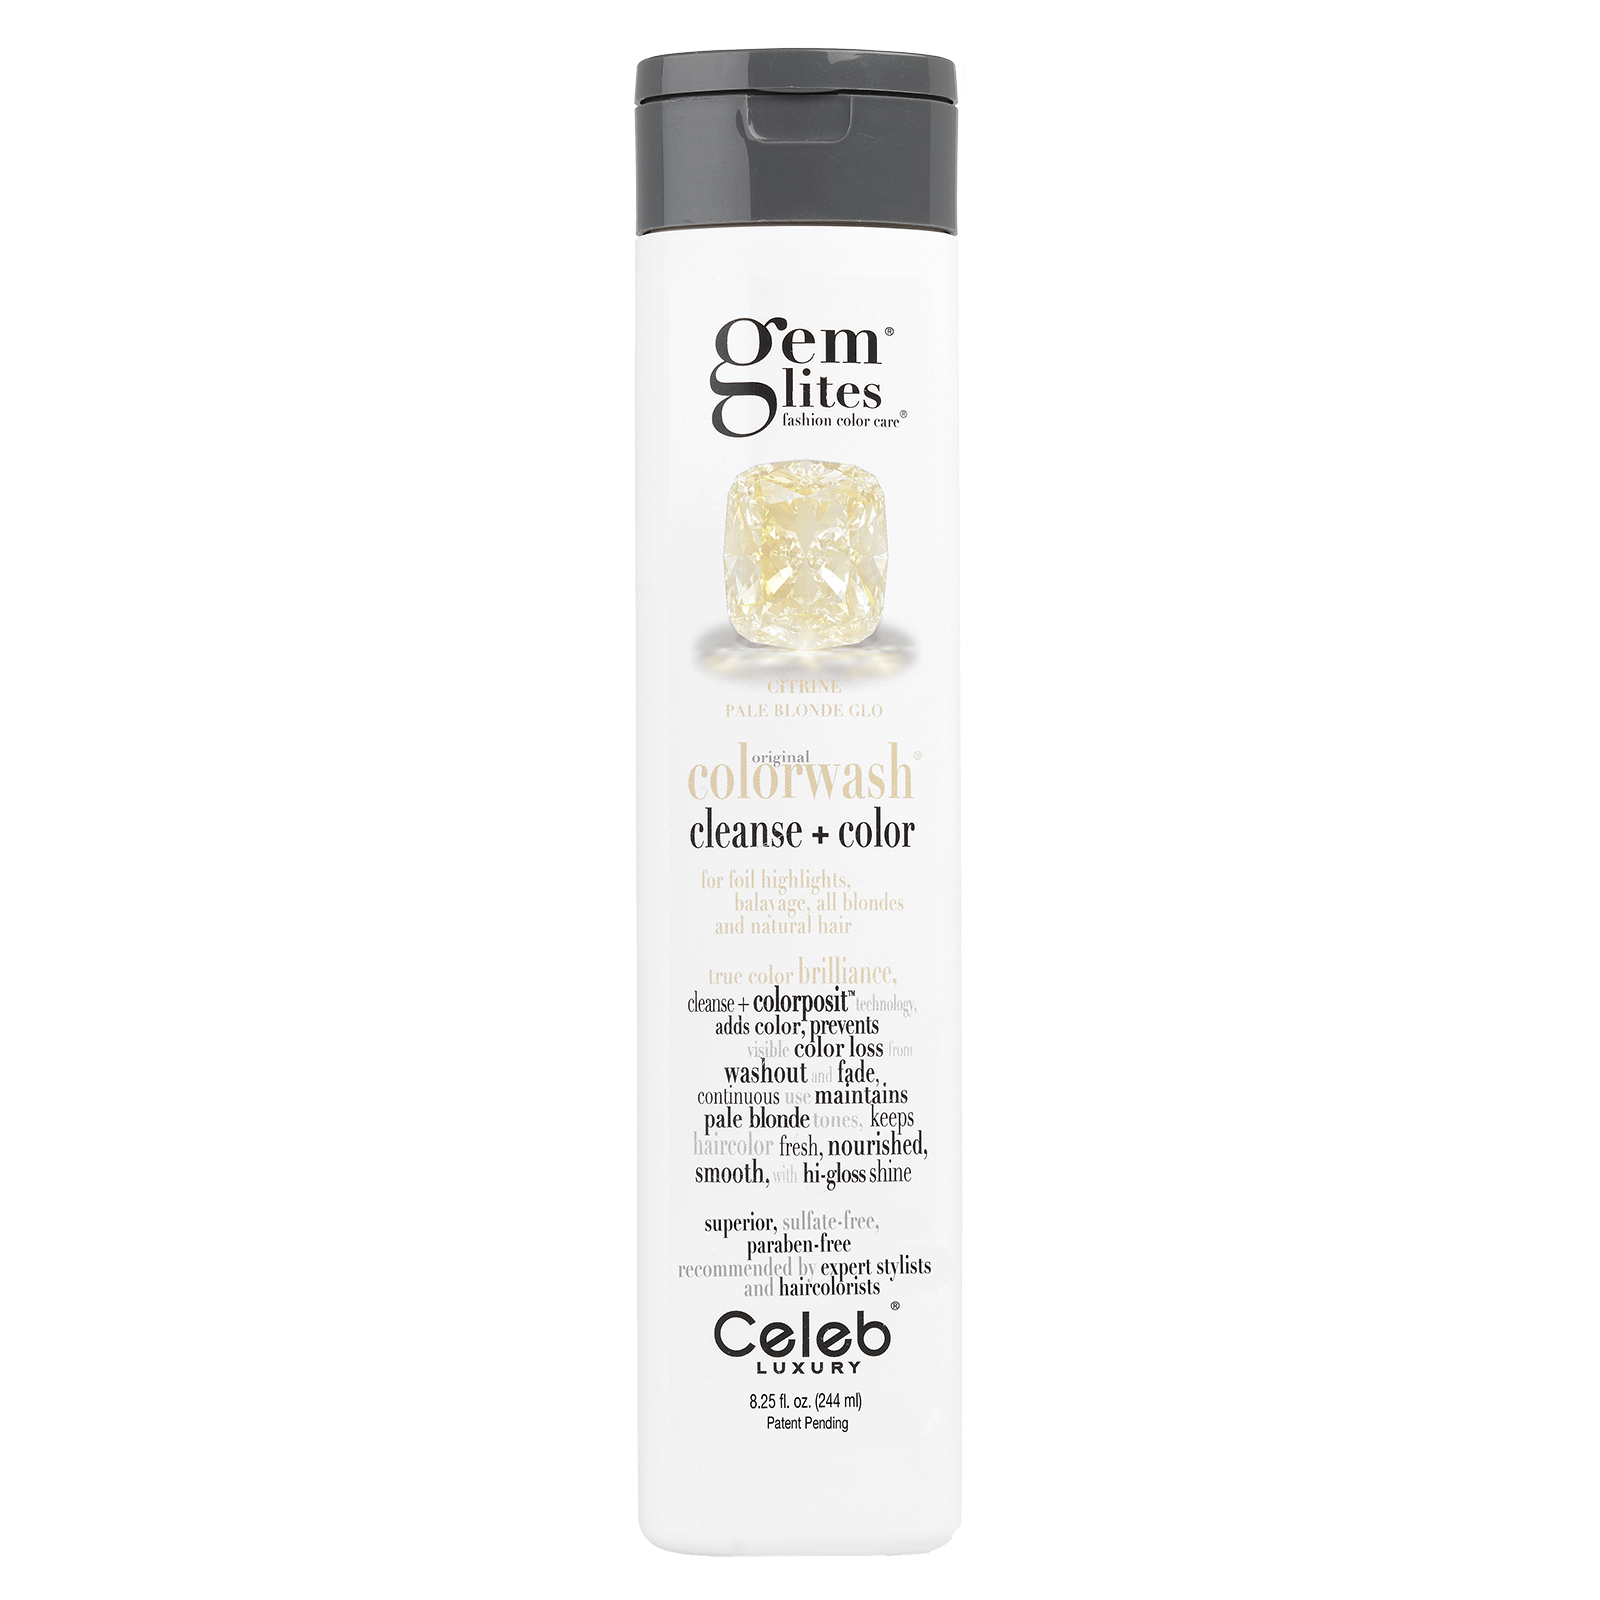 Gem Lites Citrine Colorwash